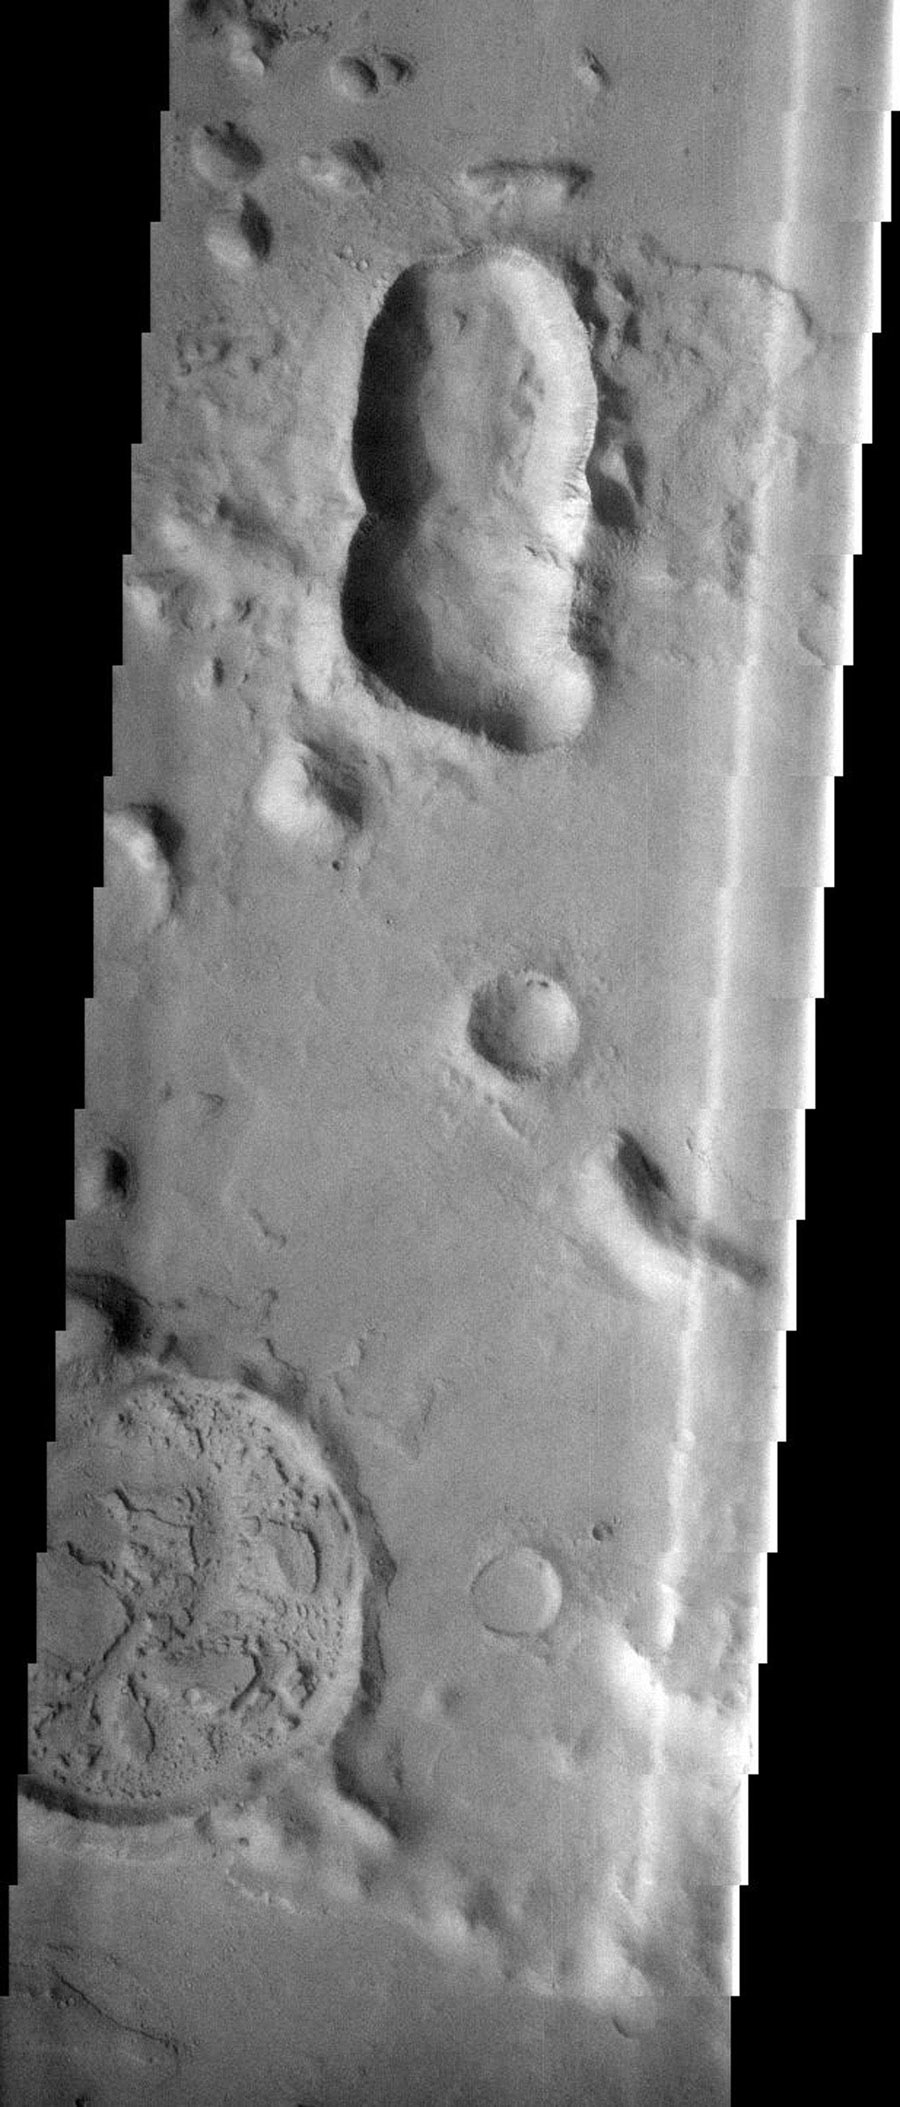 This image contains several different impact craters on Mars as seen by NASA's 2001 Mars Odyssey spacecraft.